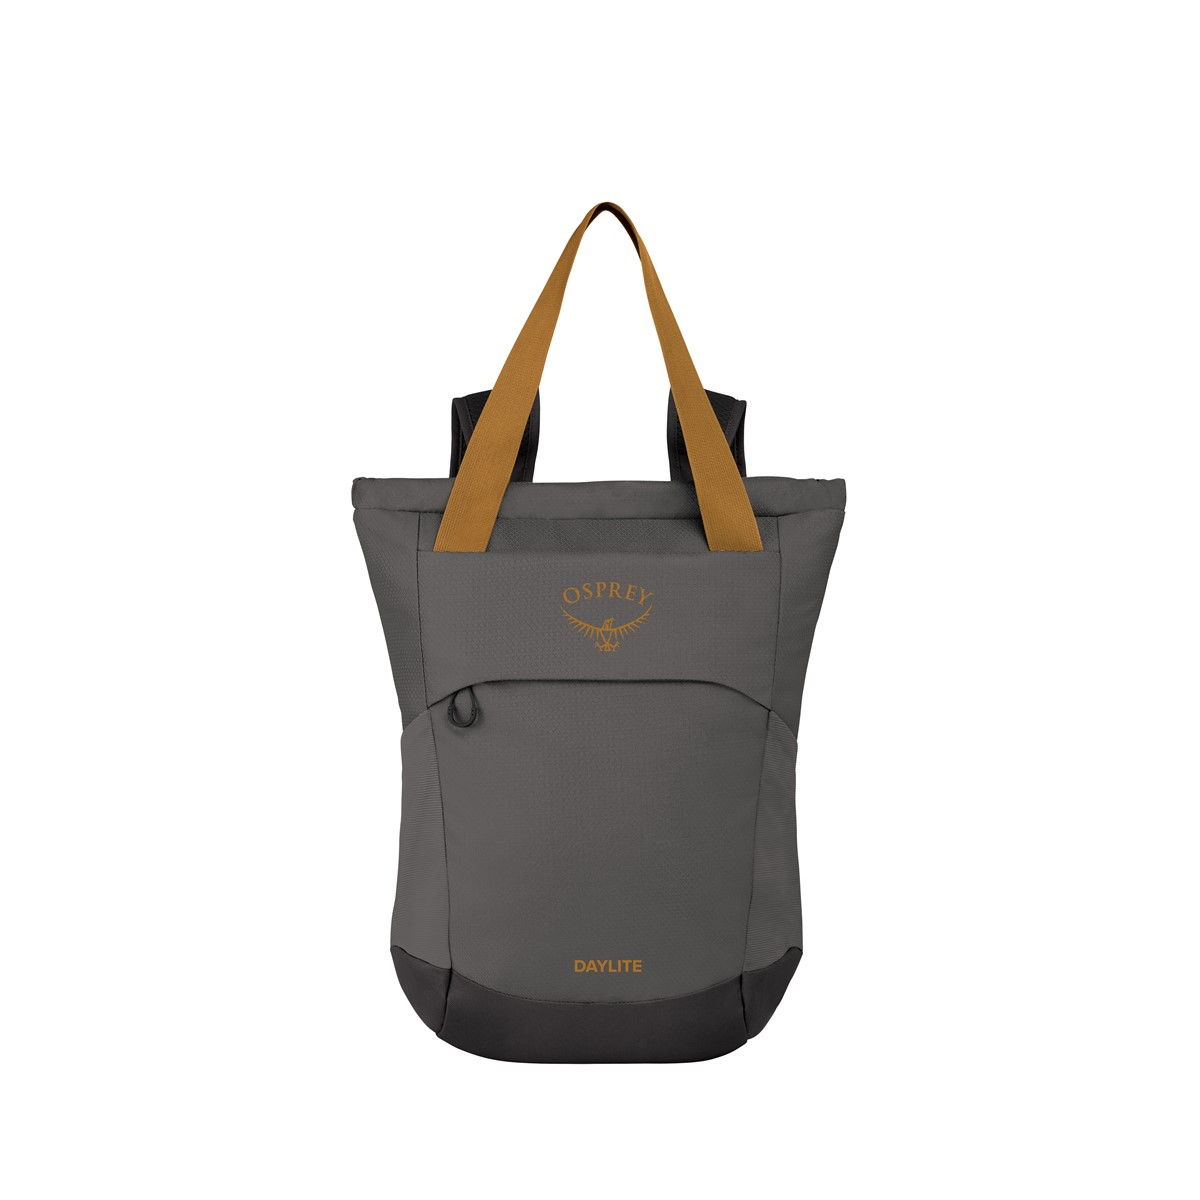 Daylite Tote Pack in Grey